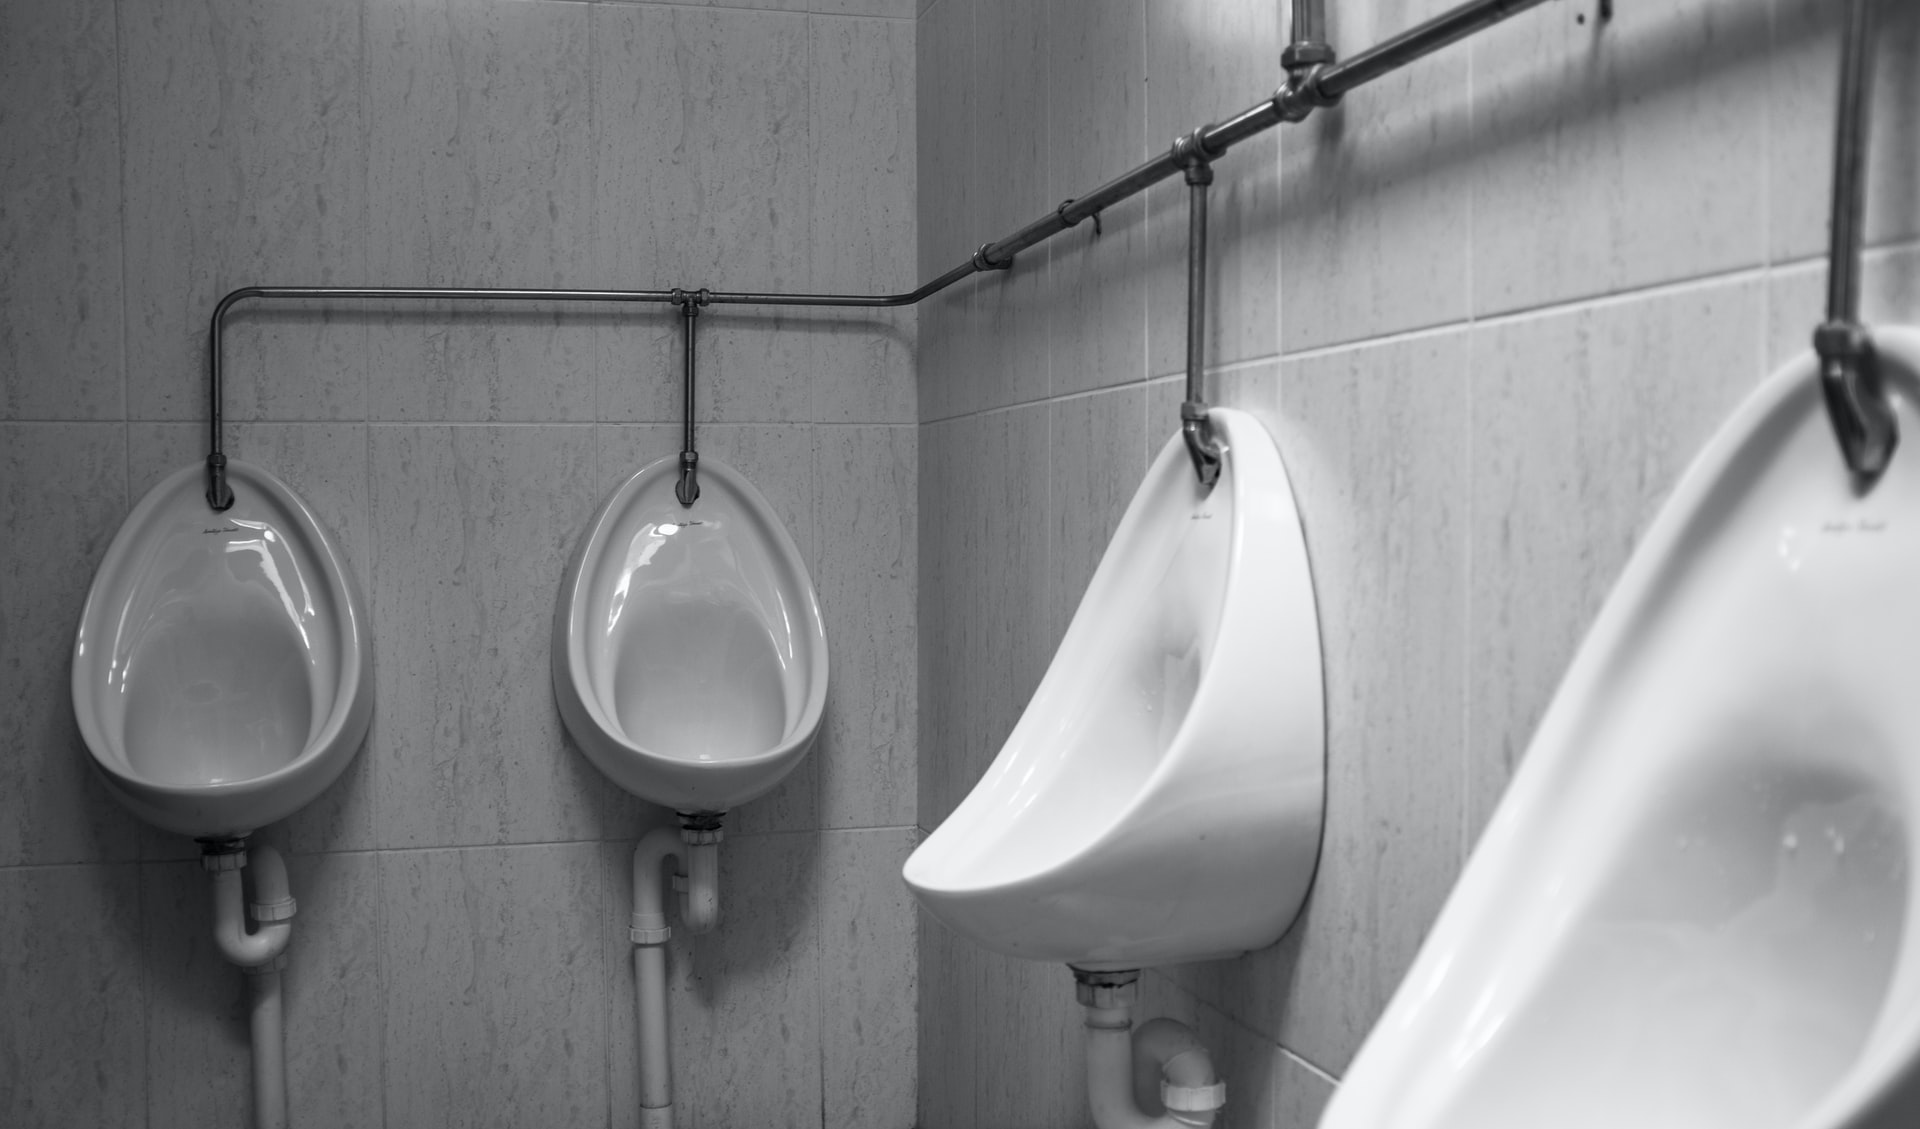 Black and white urinals